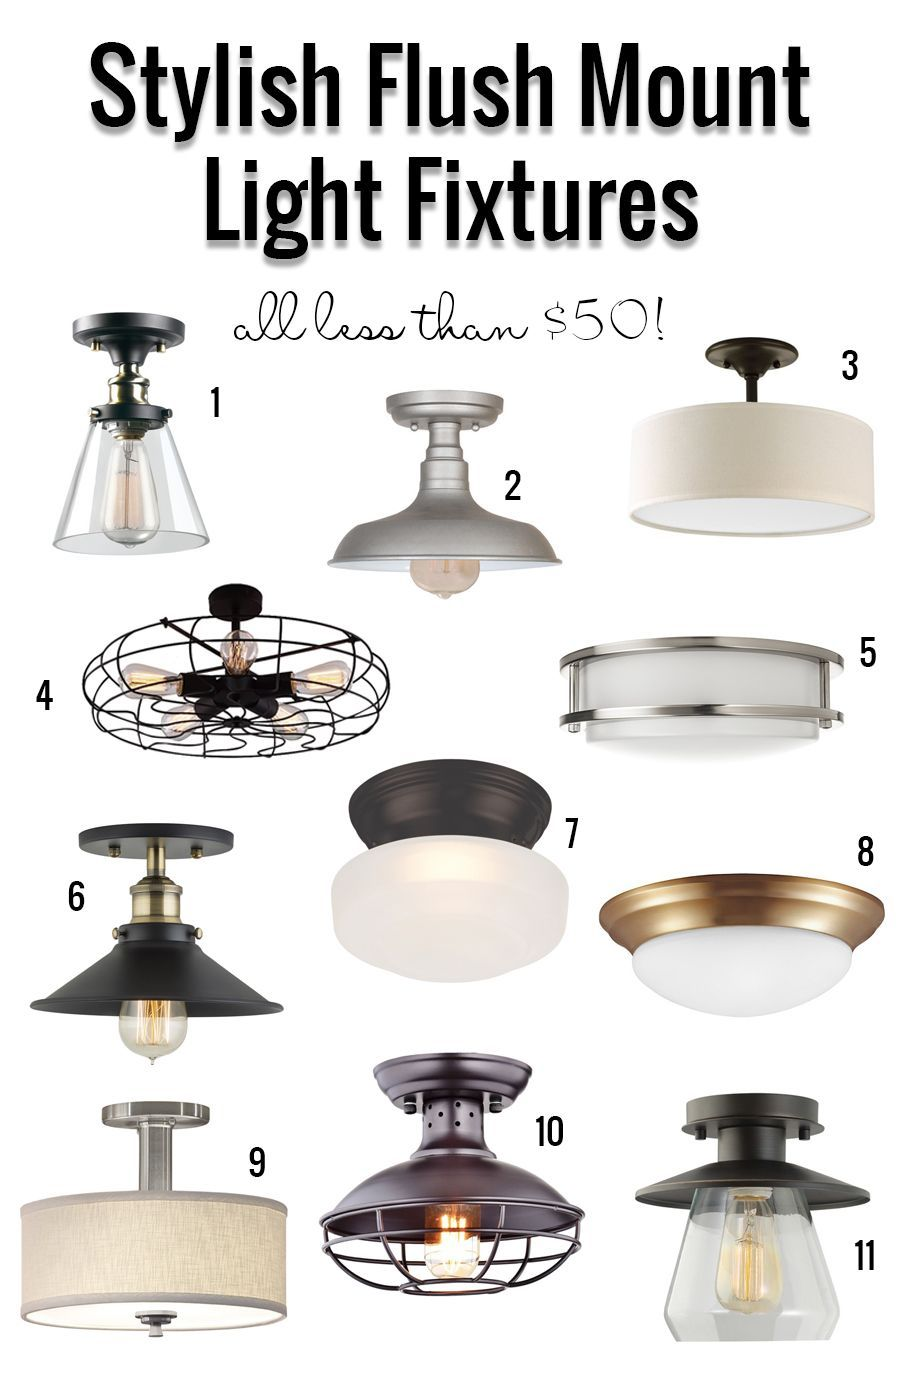 Stylish flush mount light fixtures under 50 so many great affordable options in this round up of lighting options